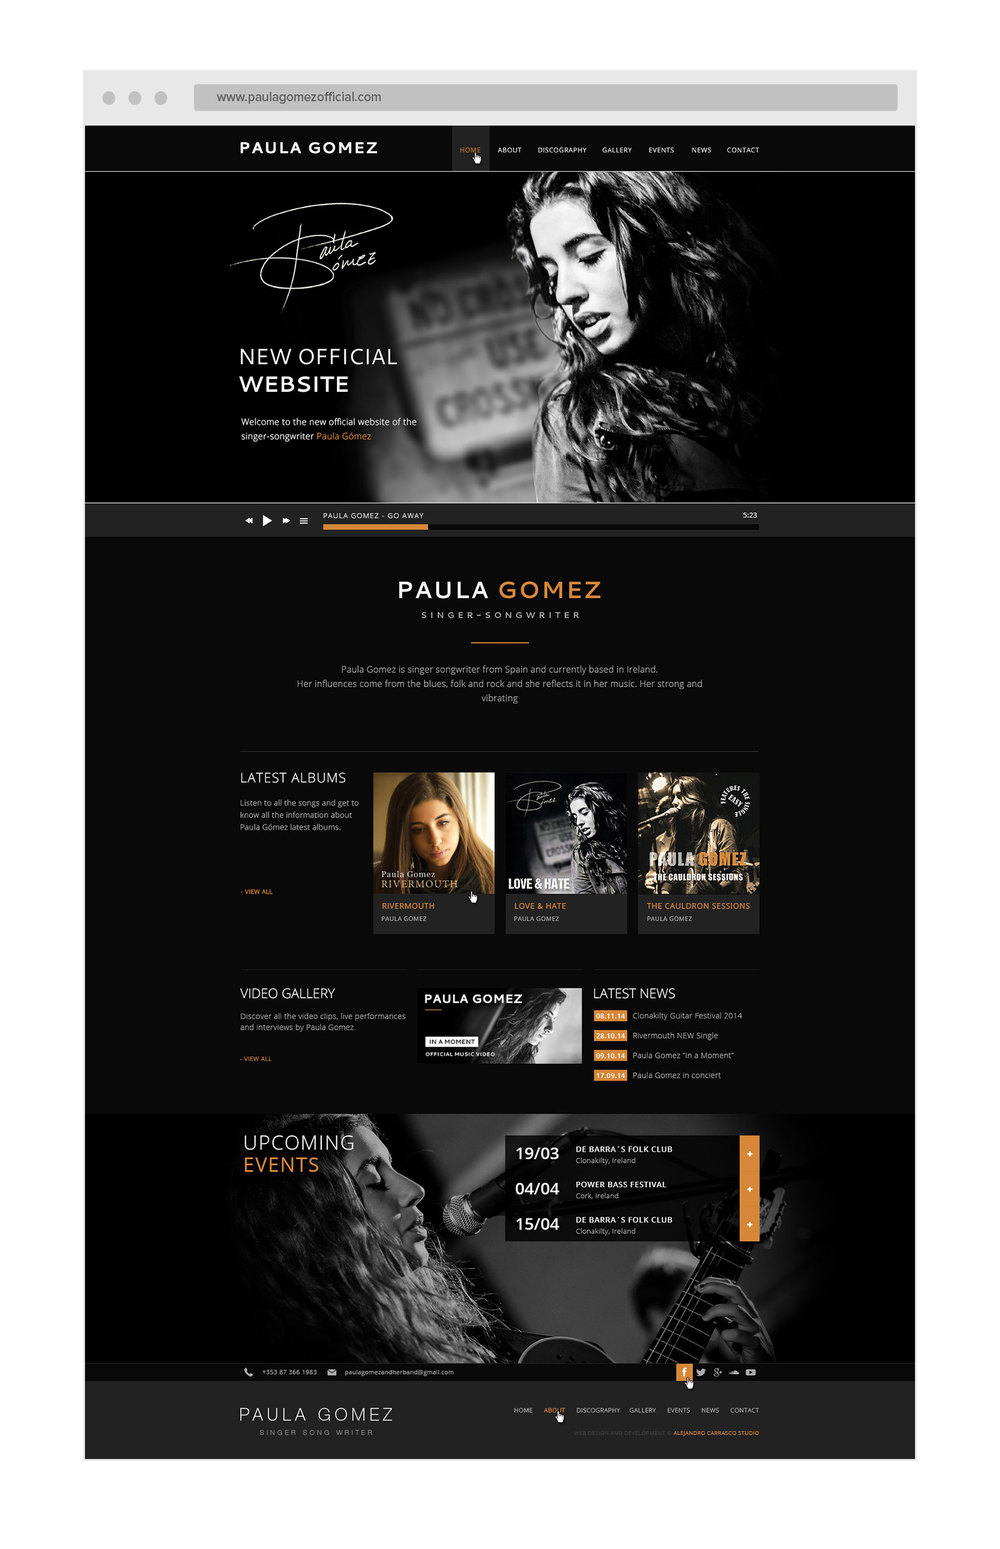 paula-gomez-website-01.jpg